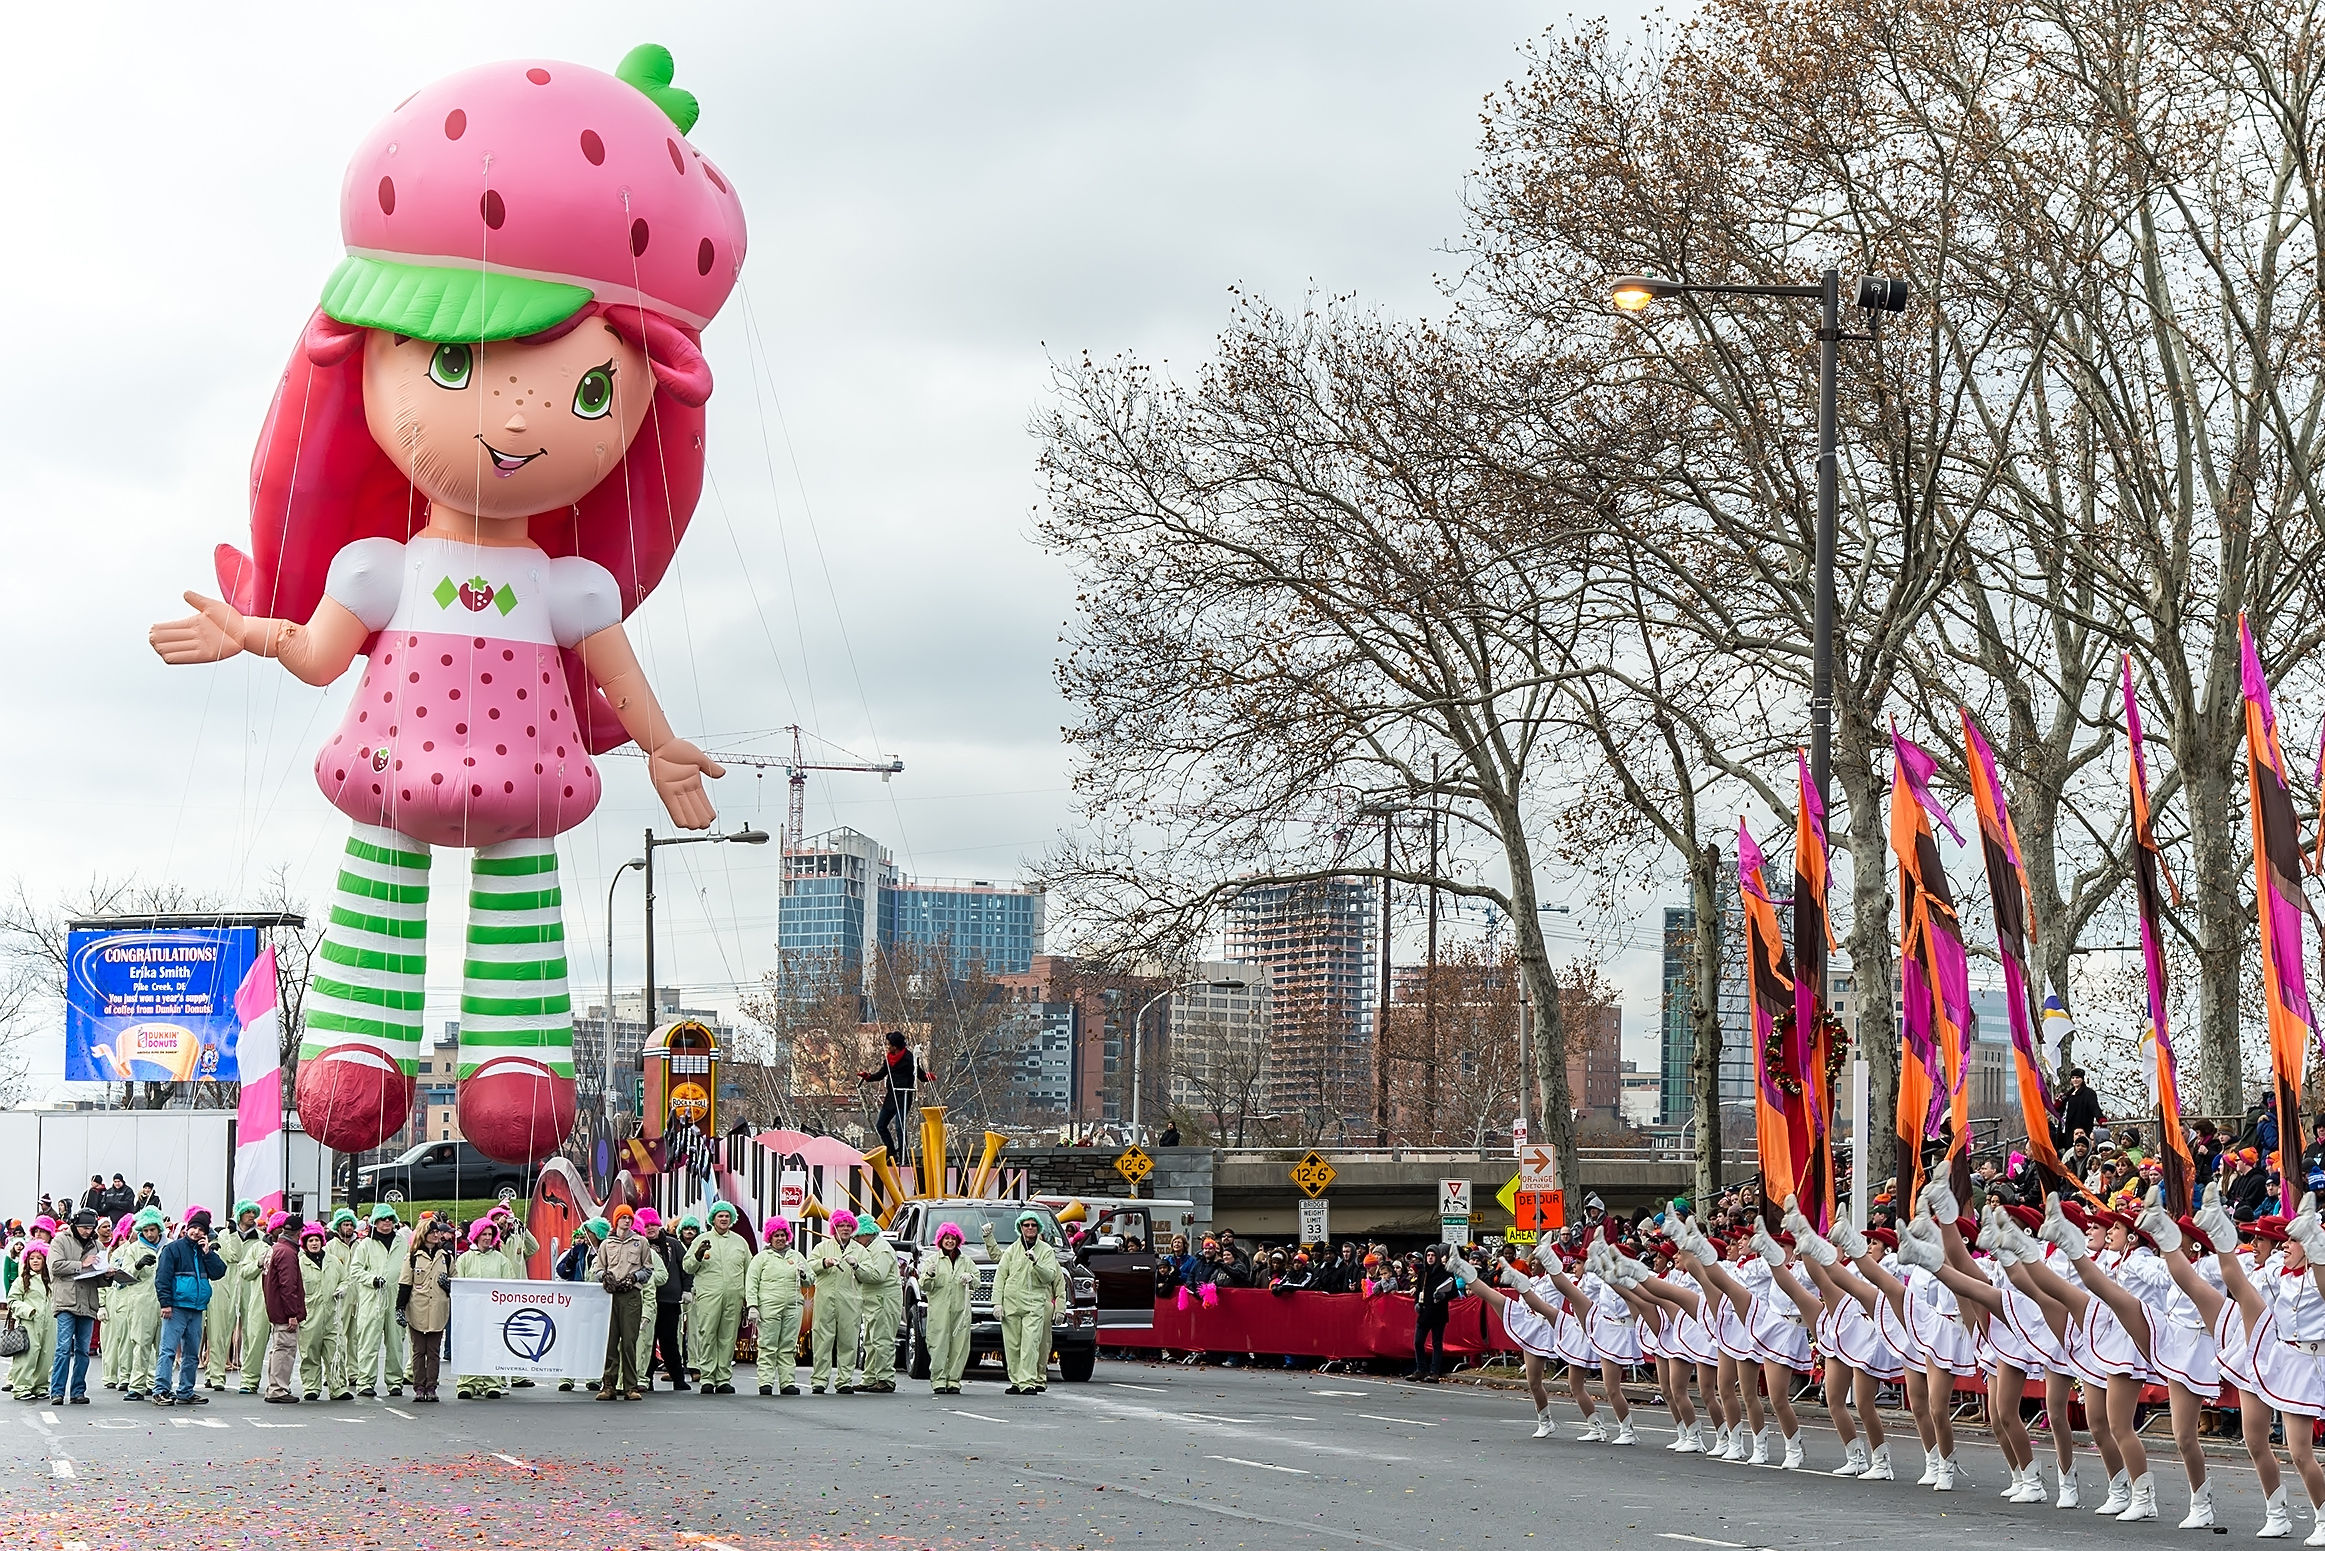 Celebrating an Icon: Strawberry Shortcake Turns 40